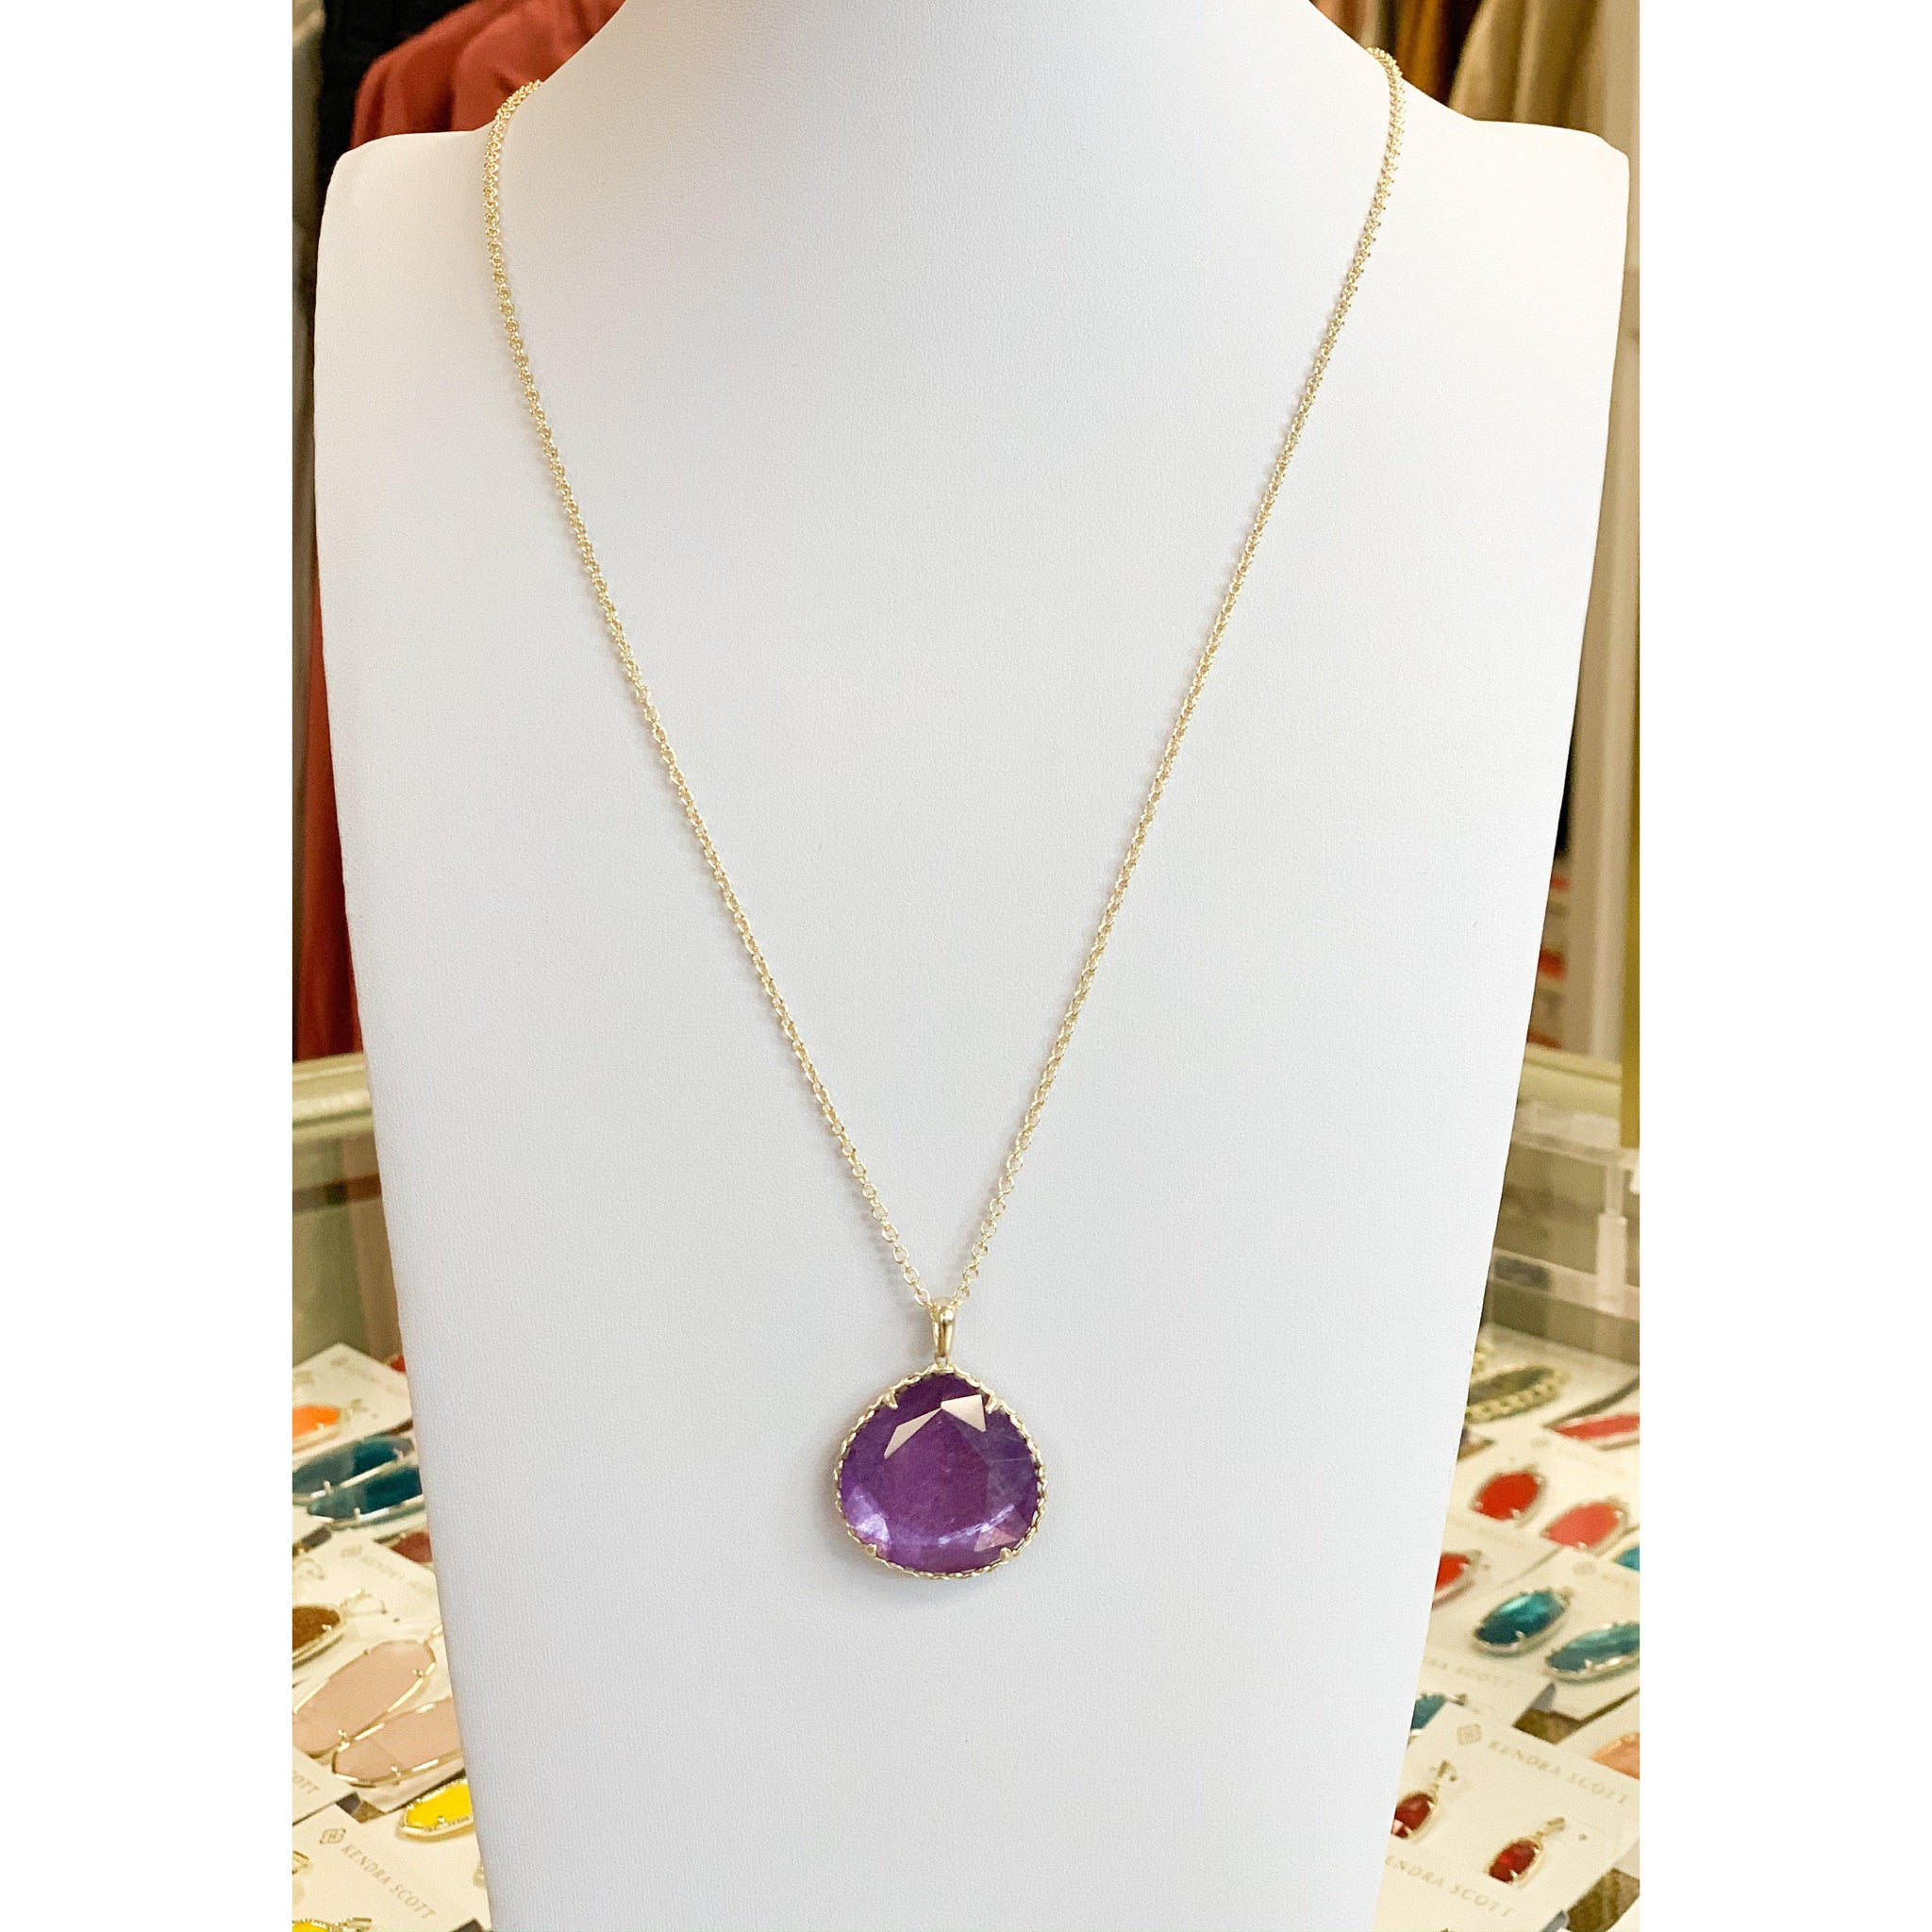 Kenzie Small Long Pendant Necklace in Gold Purple Mica